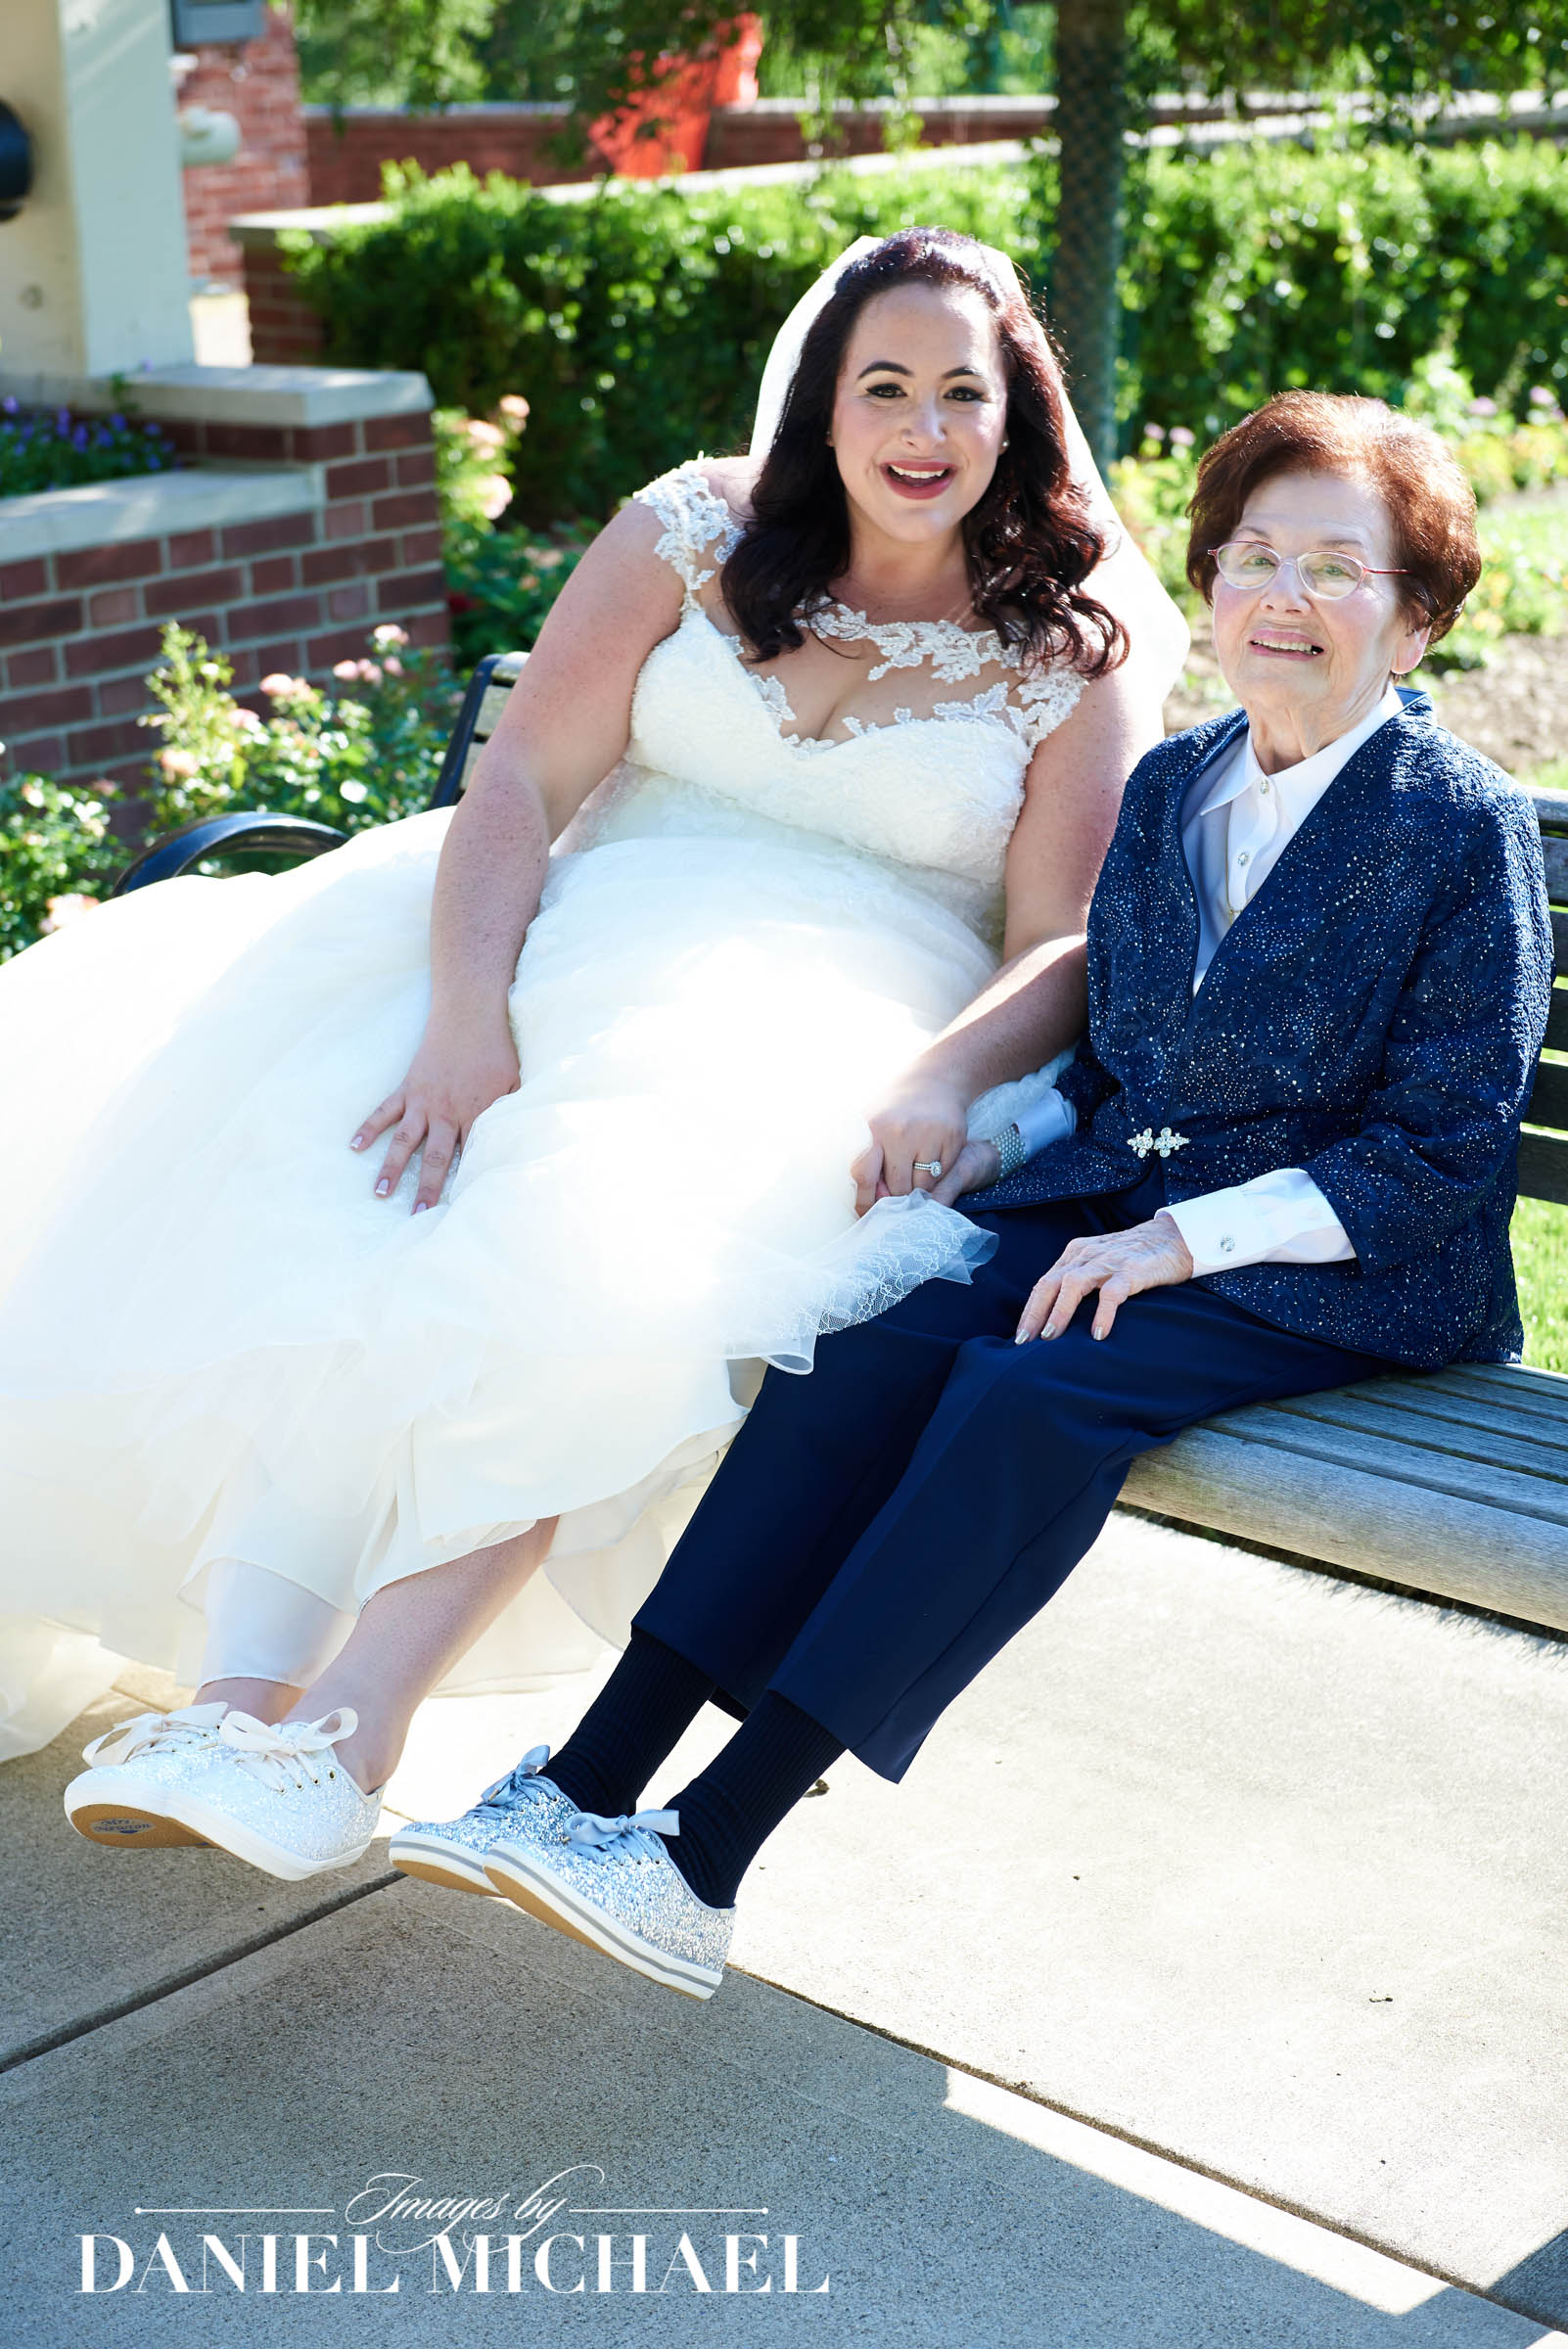 Wedding Shoes With Grandma